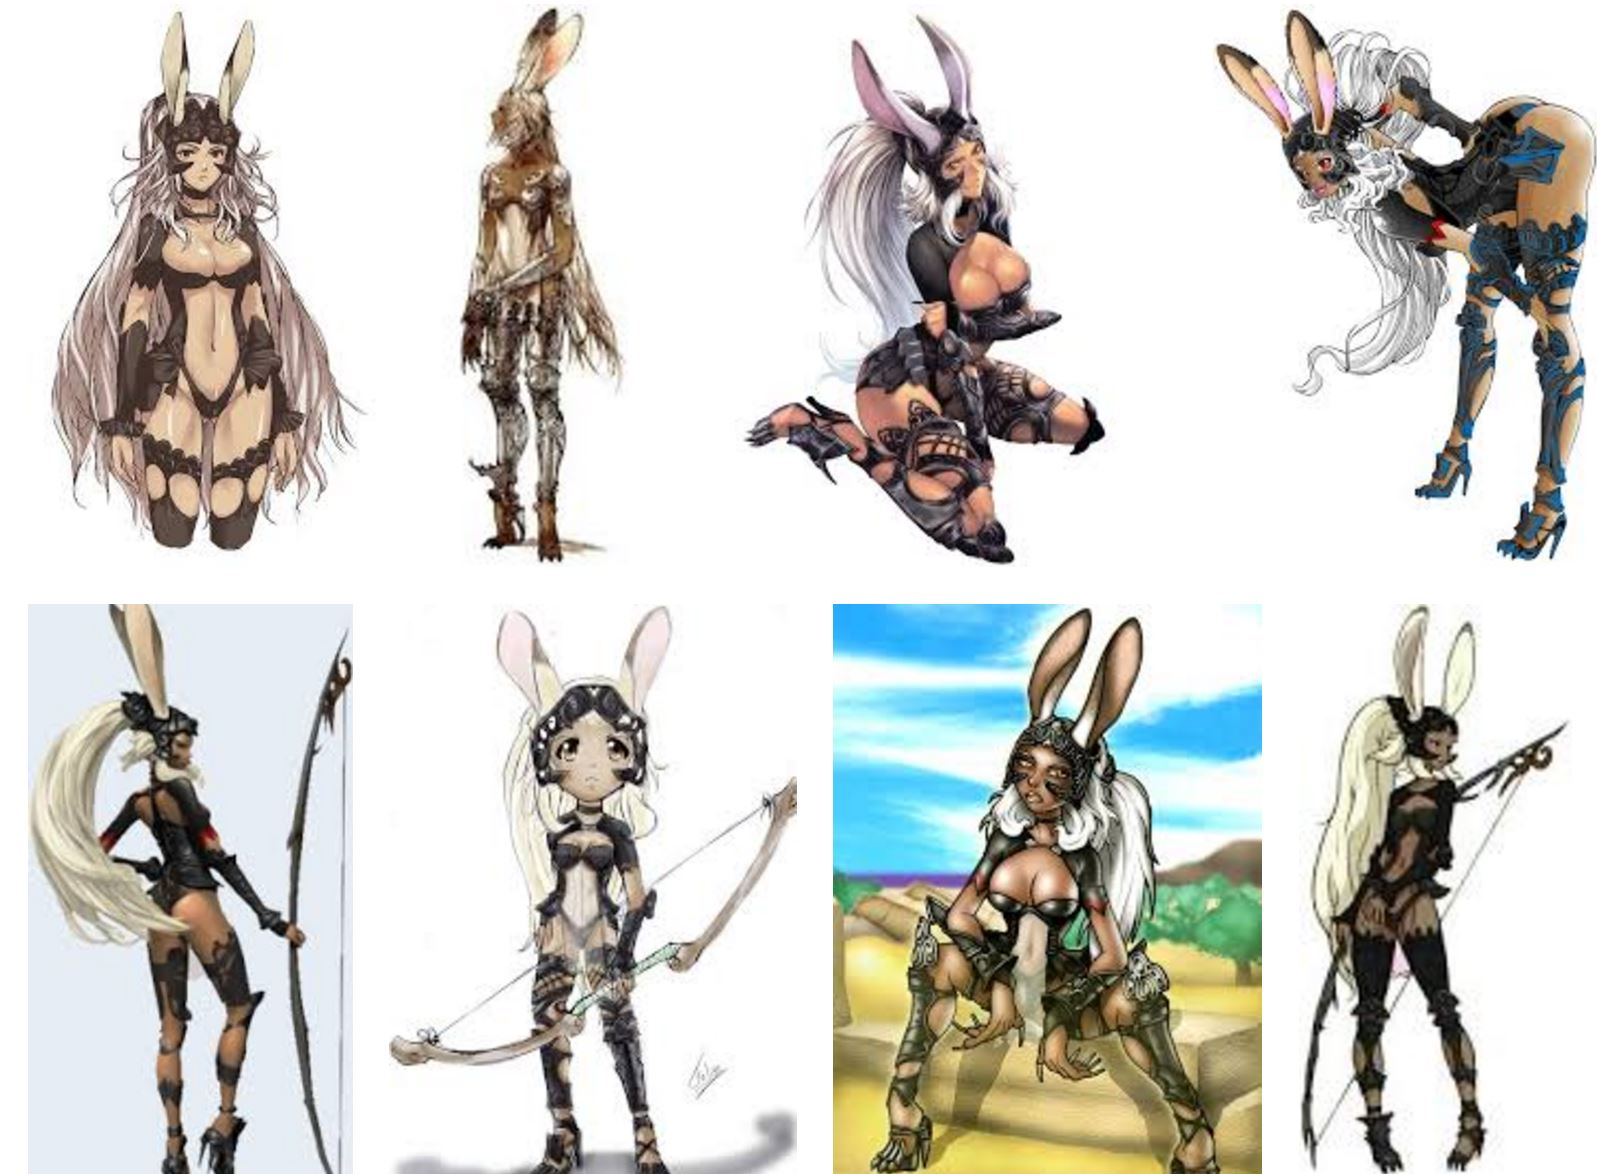 Bunny Girls Arent In Final Fantasy XIV Because Of High